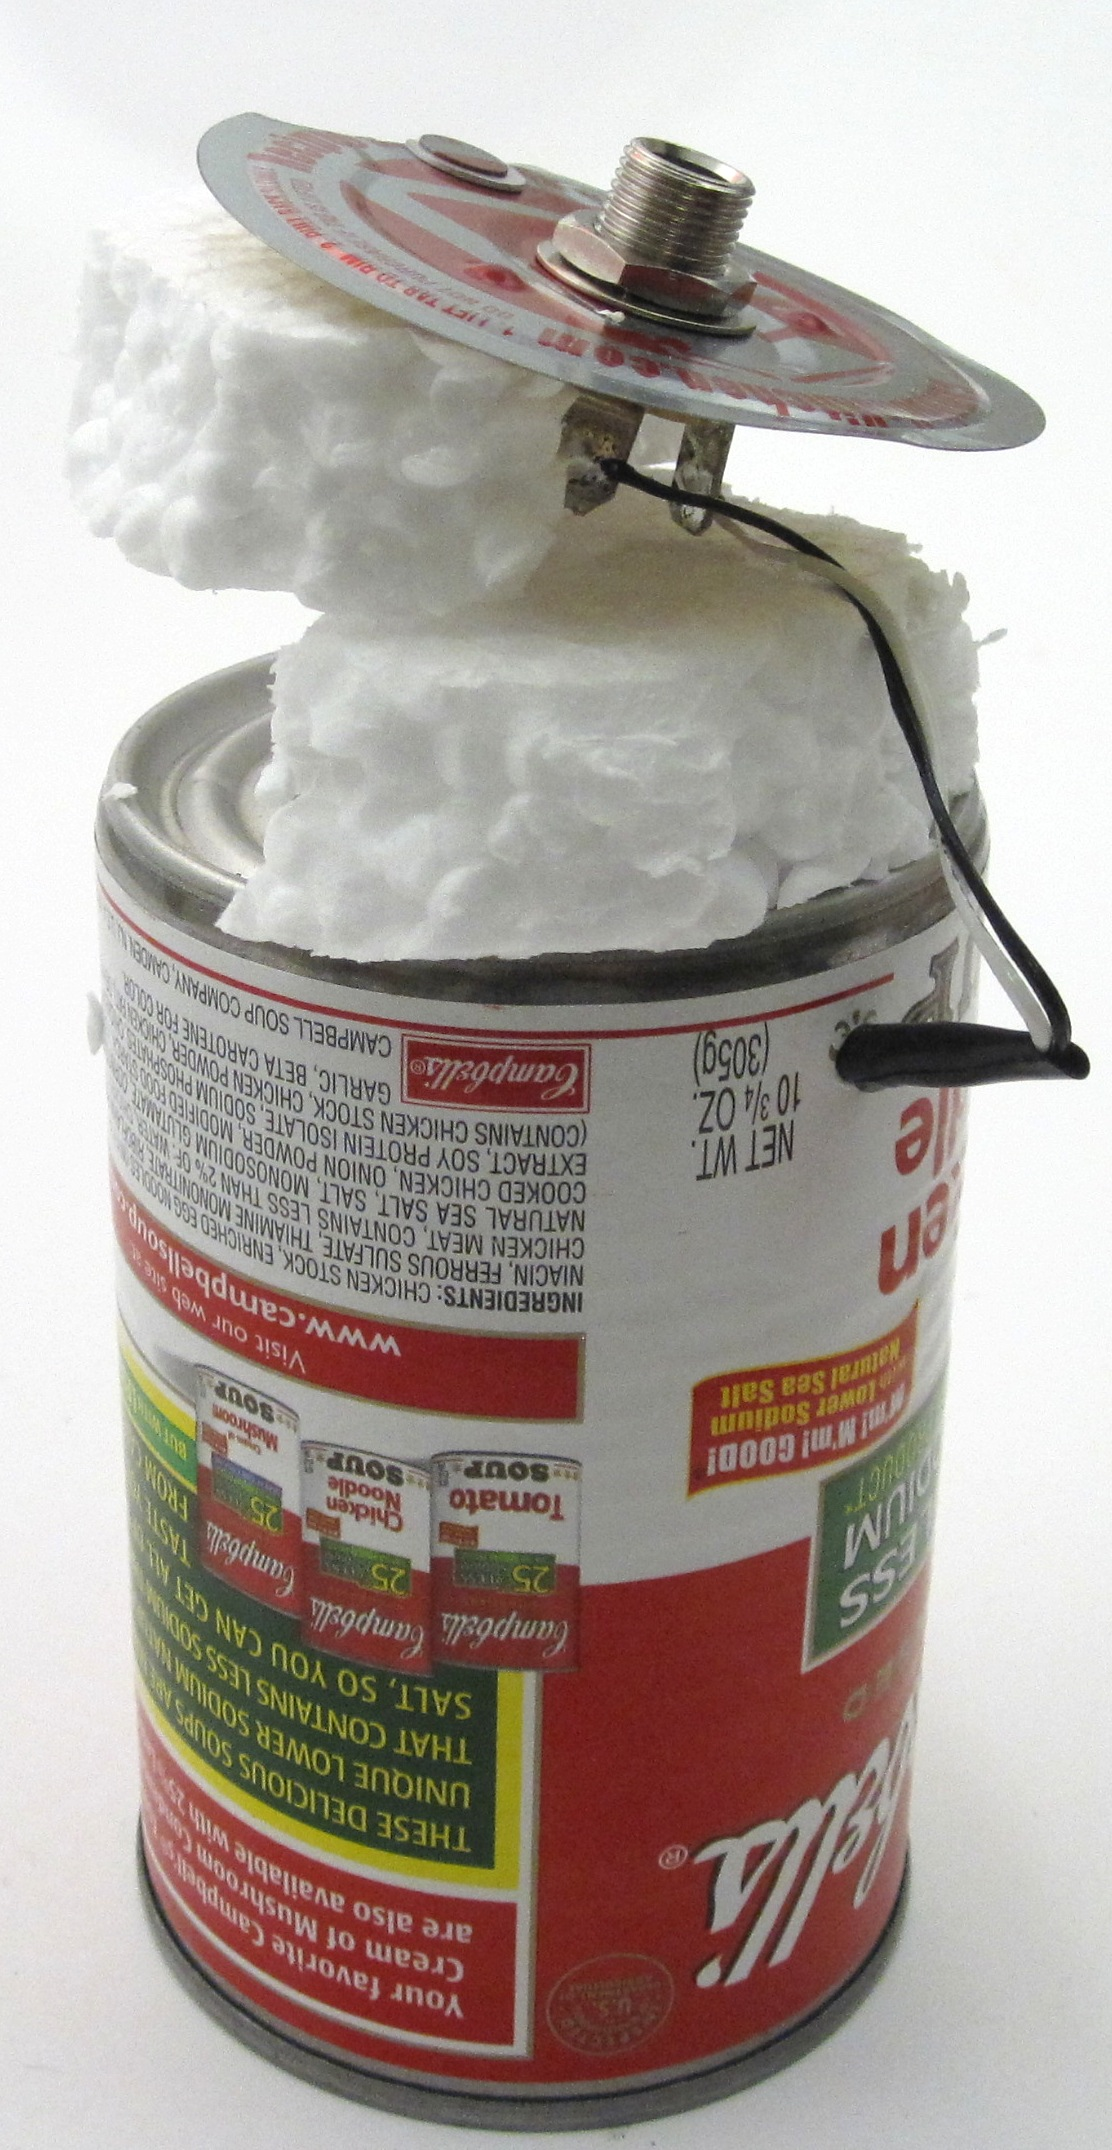 Picture of Cut Styrofoam to Use As a Filler